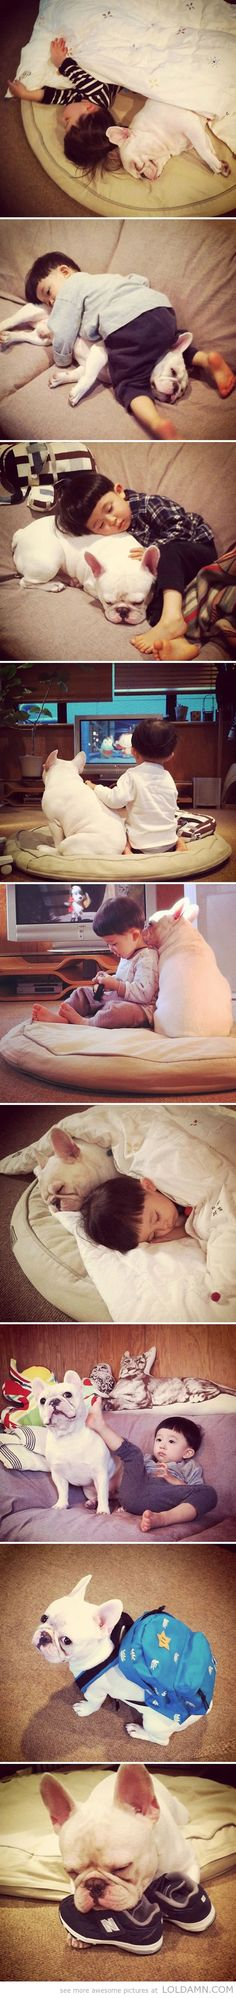 The sweetest friendship…cute boy with his best dog friend